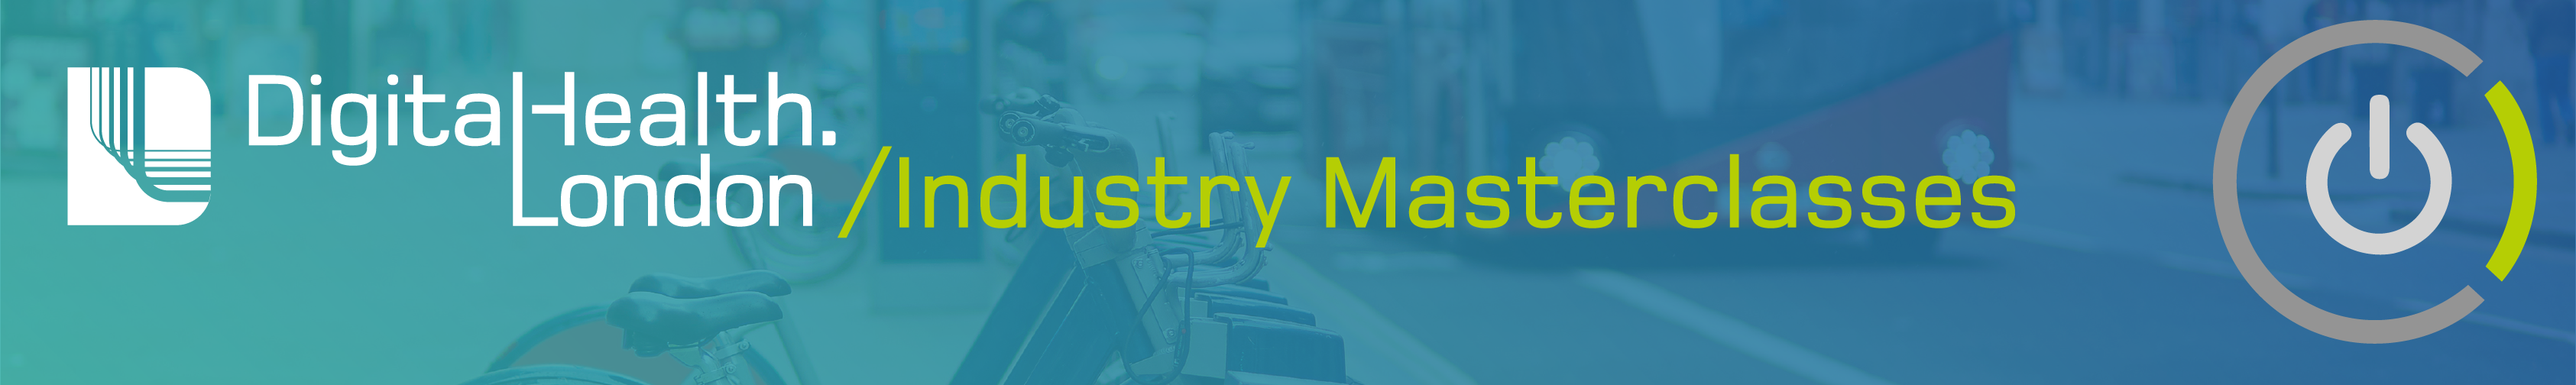 industry-masterclasses-website-banner-01-01